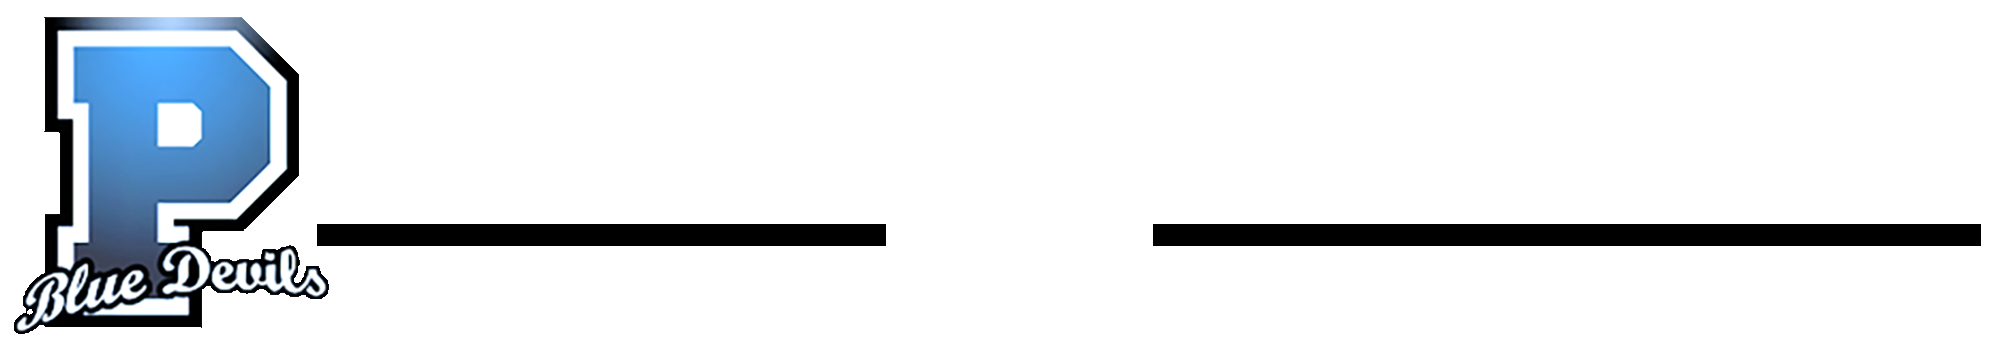 Lucy Rede Franco Middle School Logo